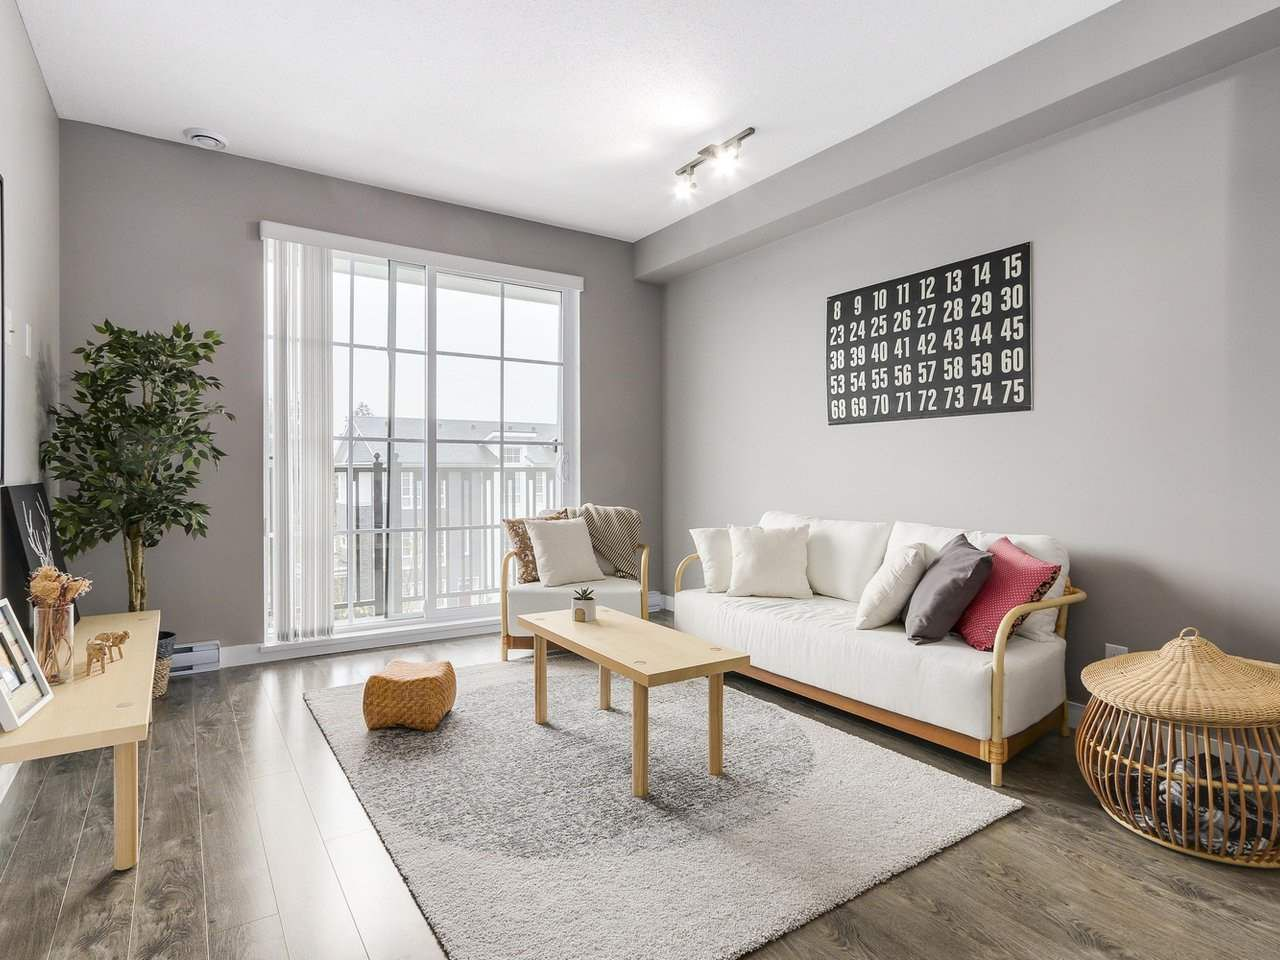 """Main Photo: 316 555 FOSTER Avenue in Coquitlam: Coquitlam West Condo for sale in """"FOSTER BY MOSAIC"""" : MLS®# R2163342"""